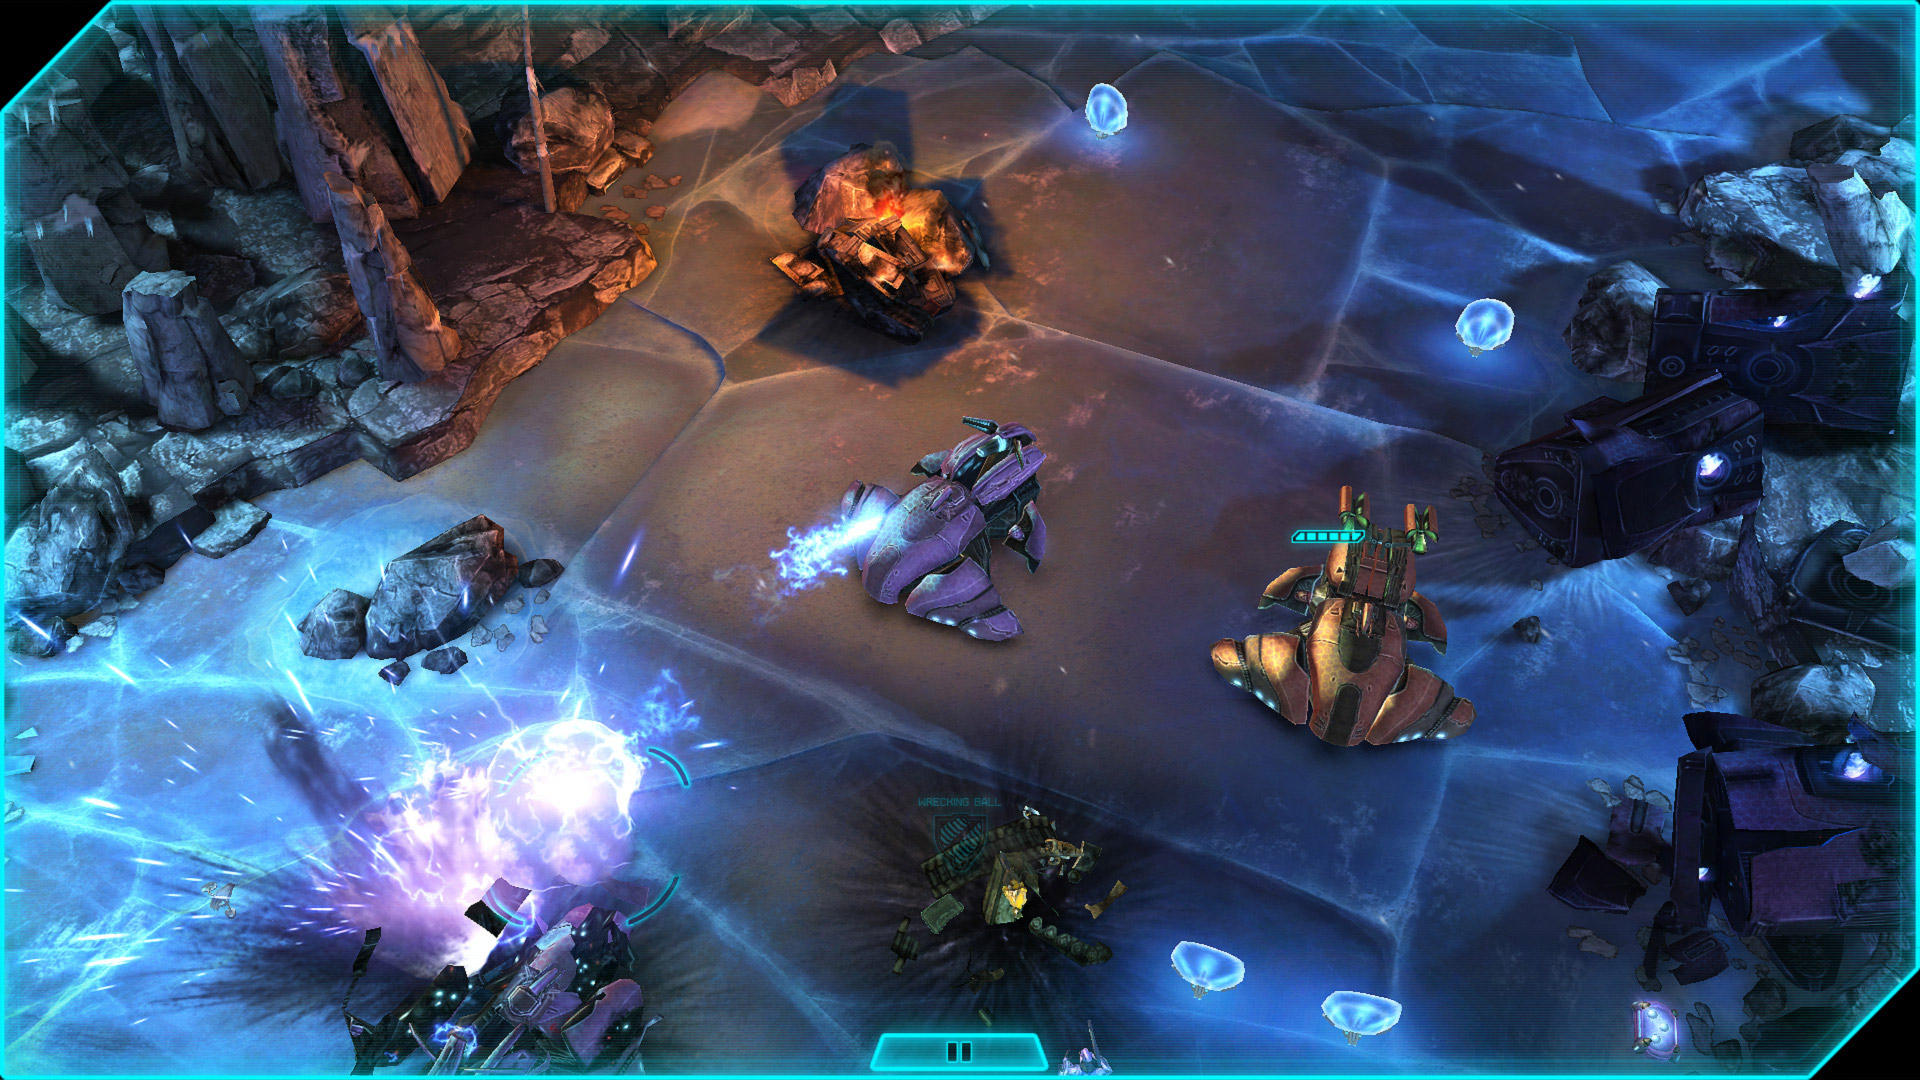 Halo Spartan Assault Screenshot Wraith Assault Halo: Spartan Assault Coming To Windows 8 Devices